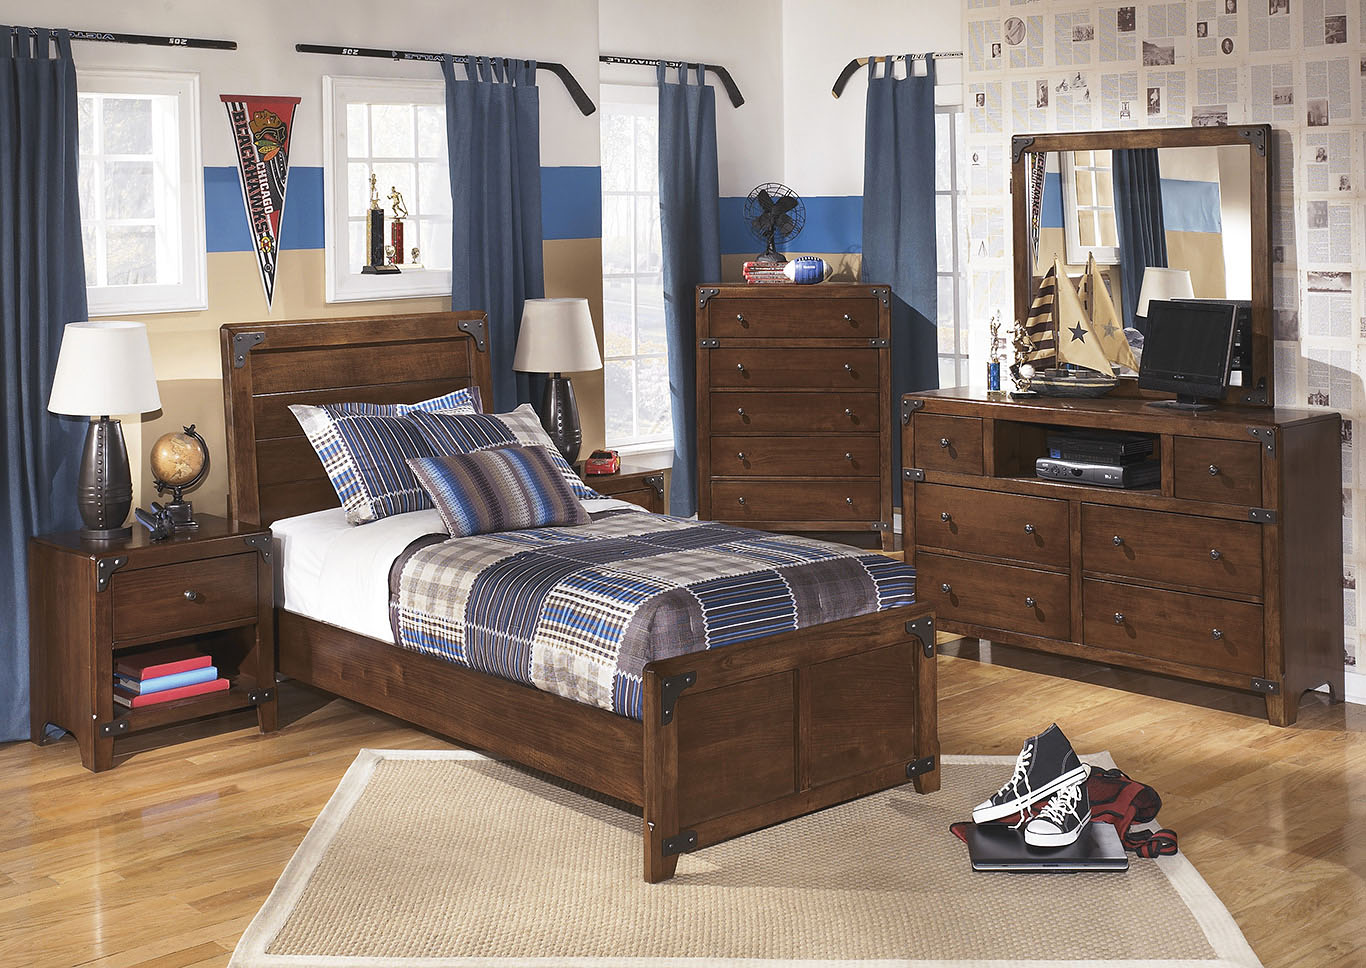 Delburne Twin Panel Bed w/Dresser, Mirror & Chest,Signature Design by Ashley